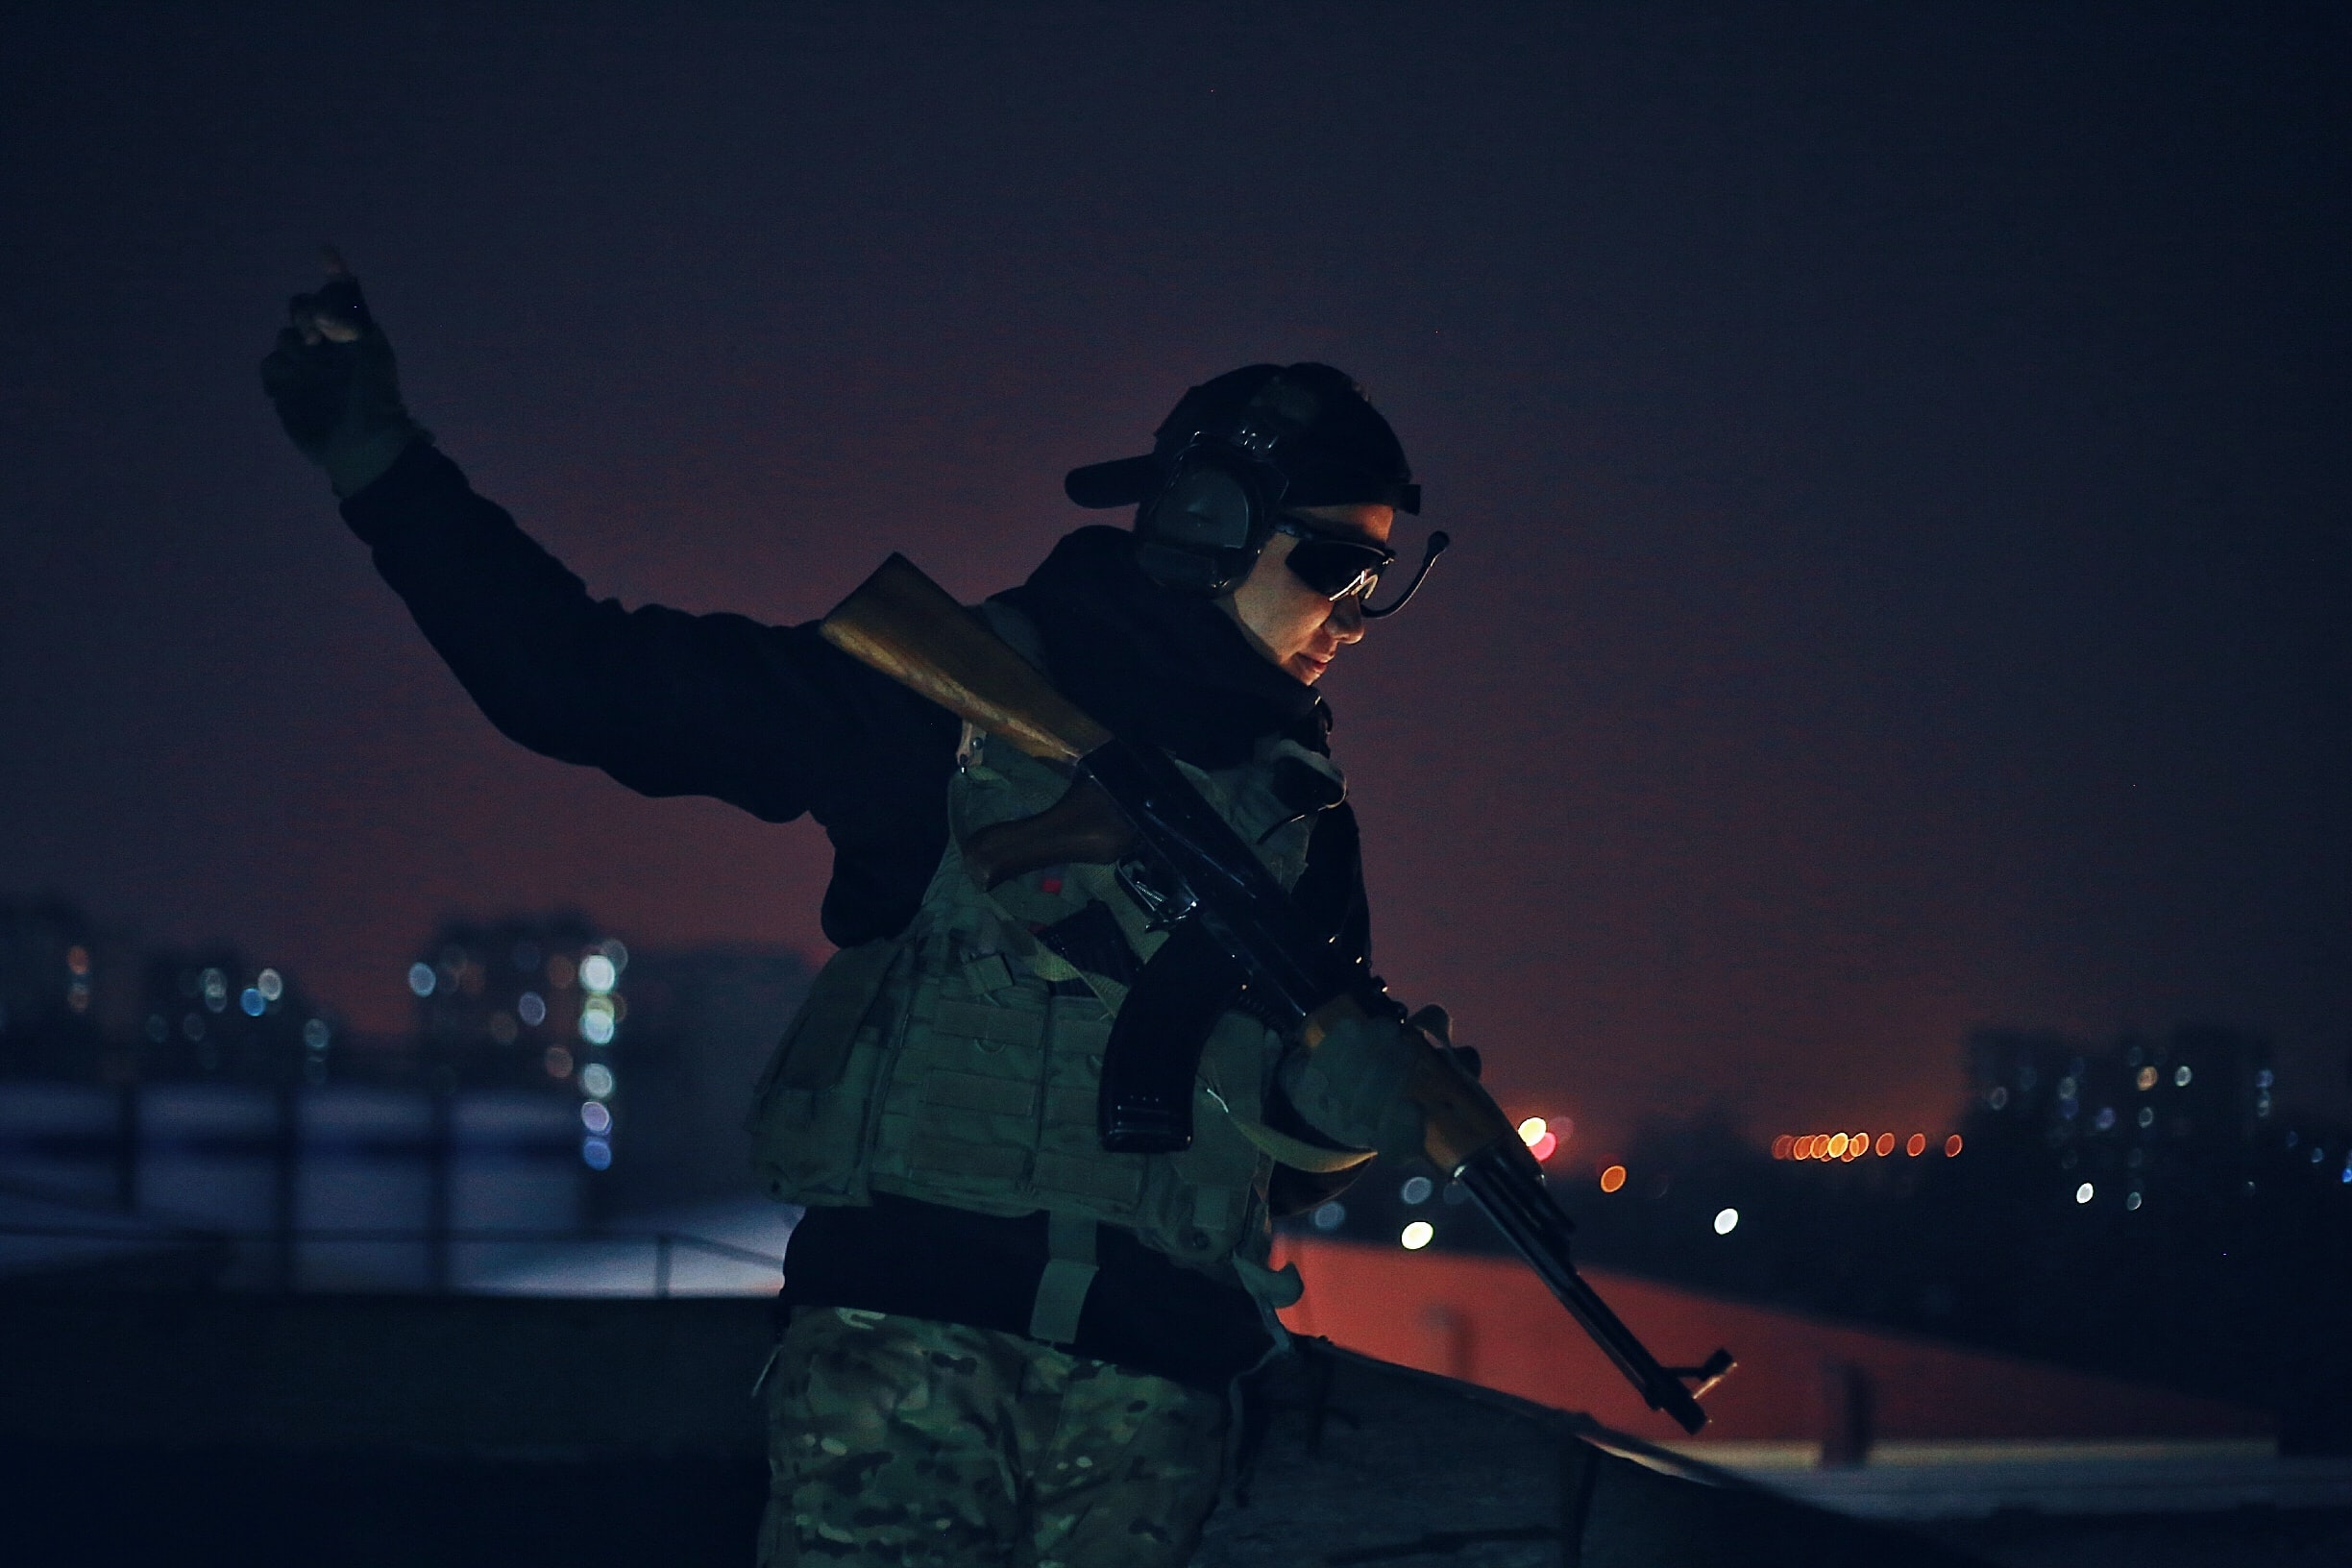 man holding rifle at nighttime